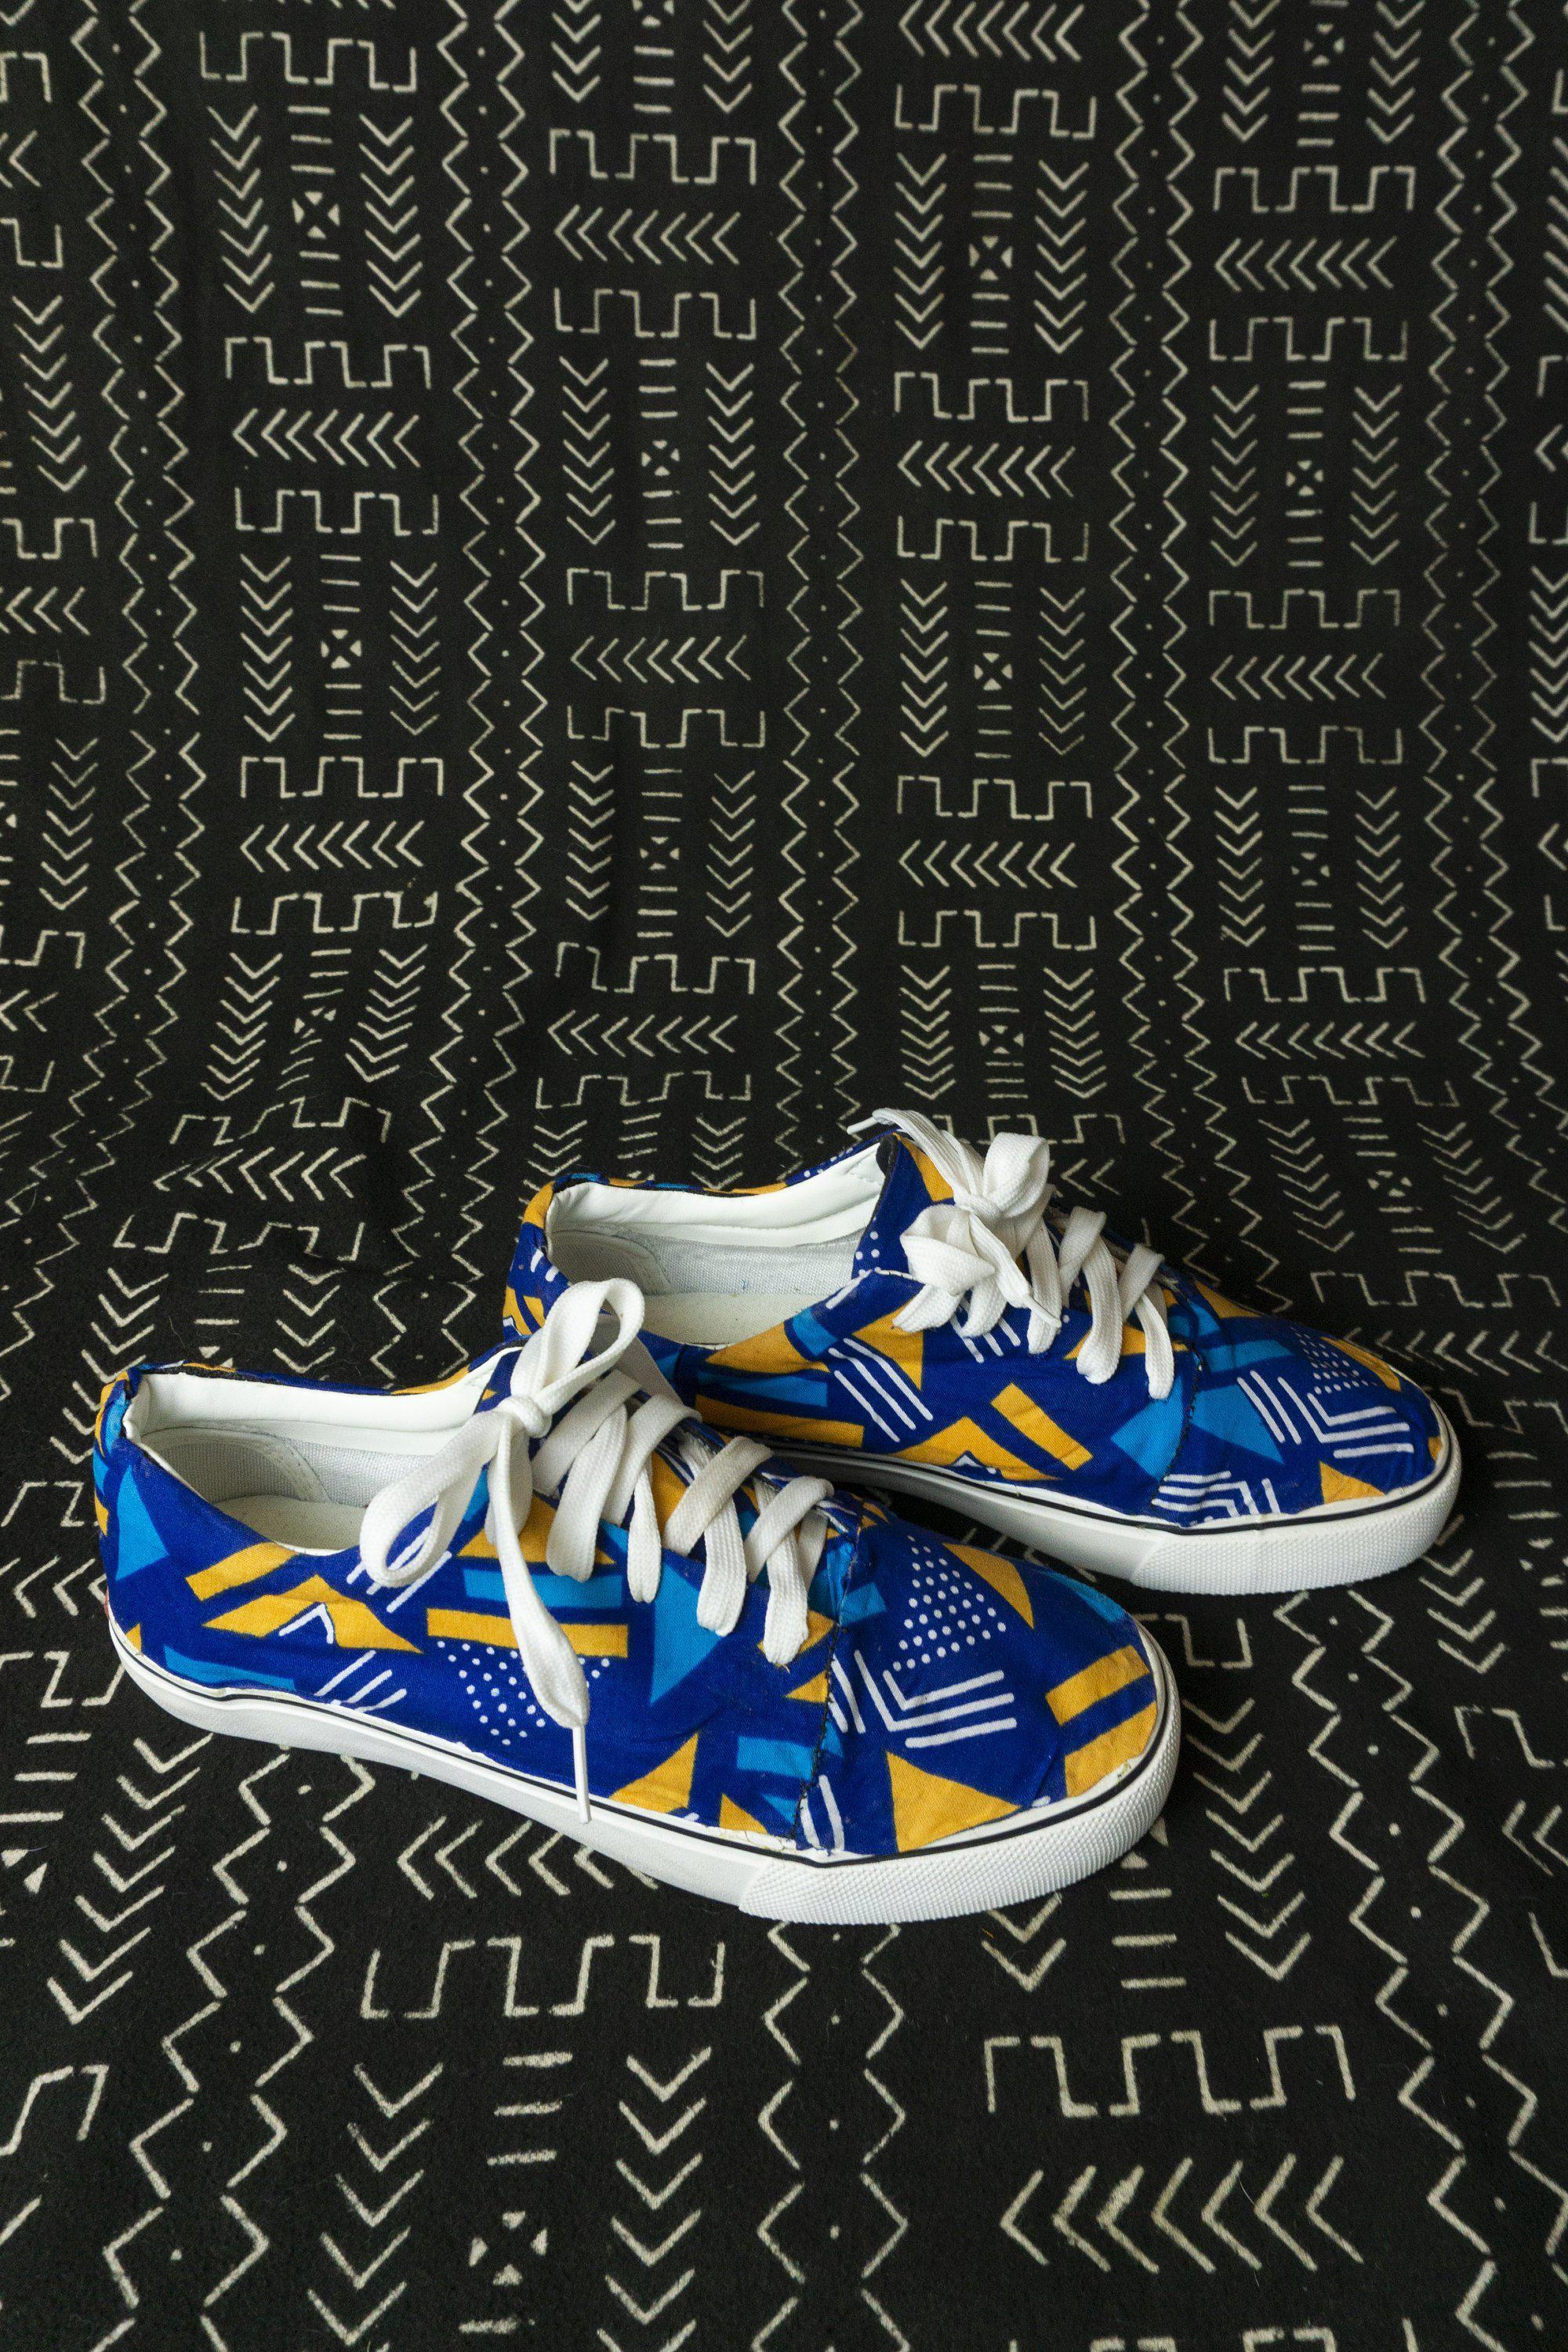 Blue African Print Sneakers / Custom Made Ankara Trainers / African Print Shoes / Custom style Vans / African Shoes / Size UK 6.5